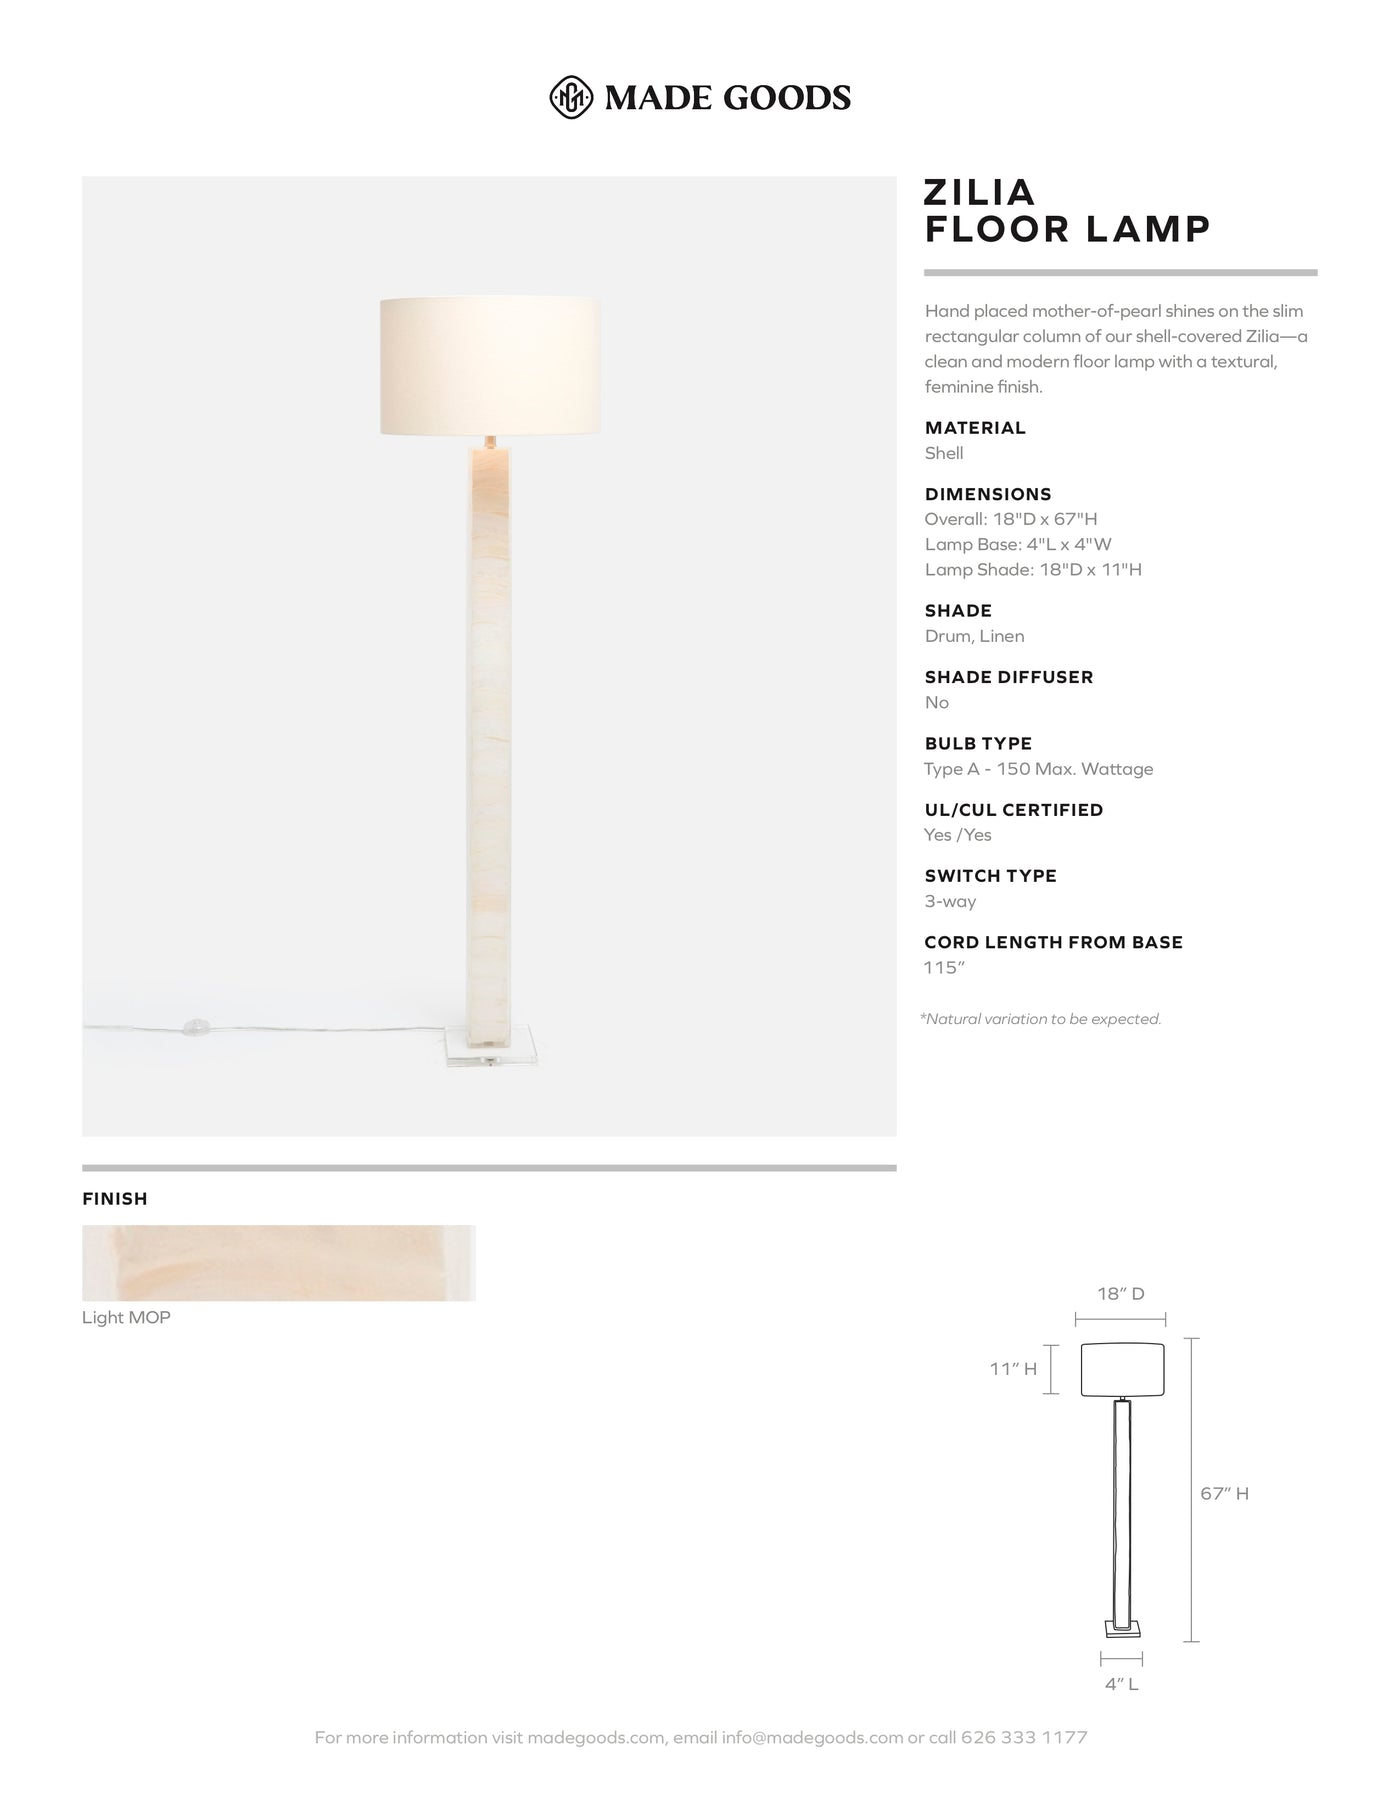 made goods zilia floor lamp tear sheet